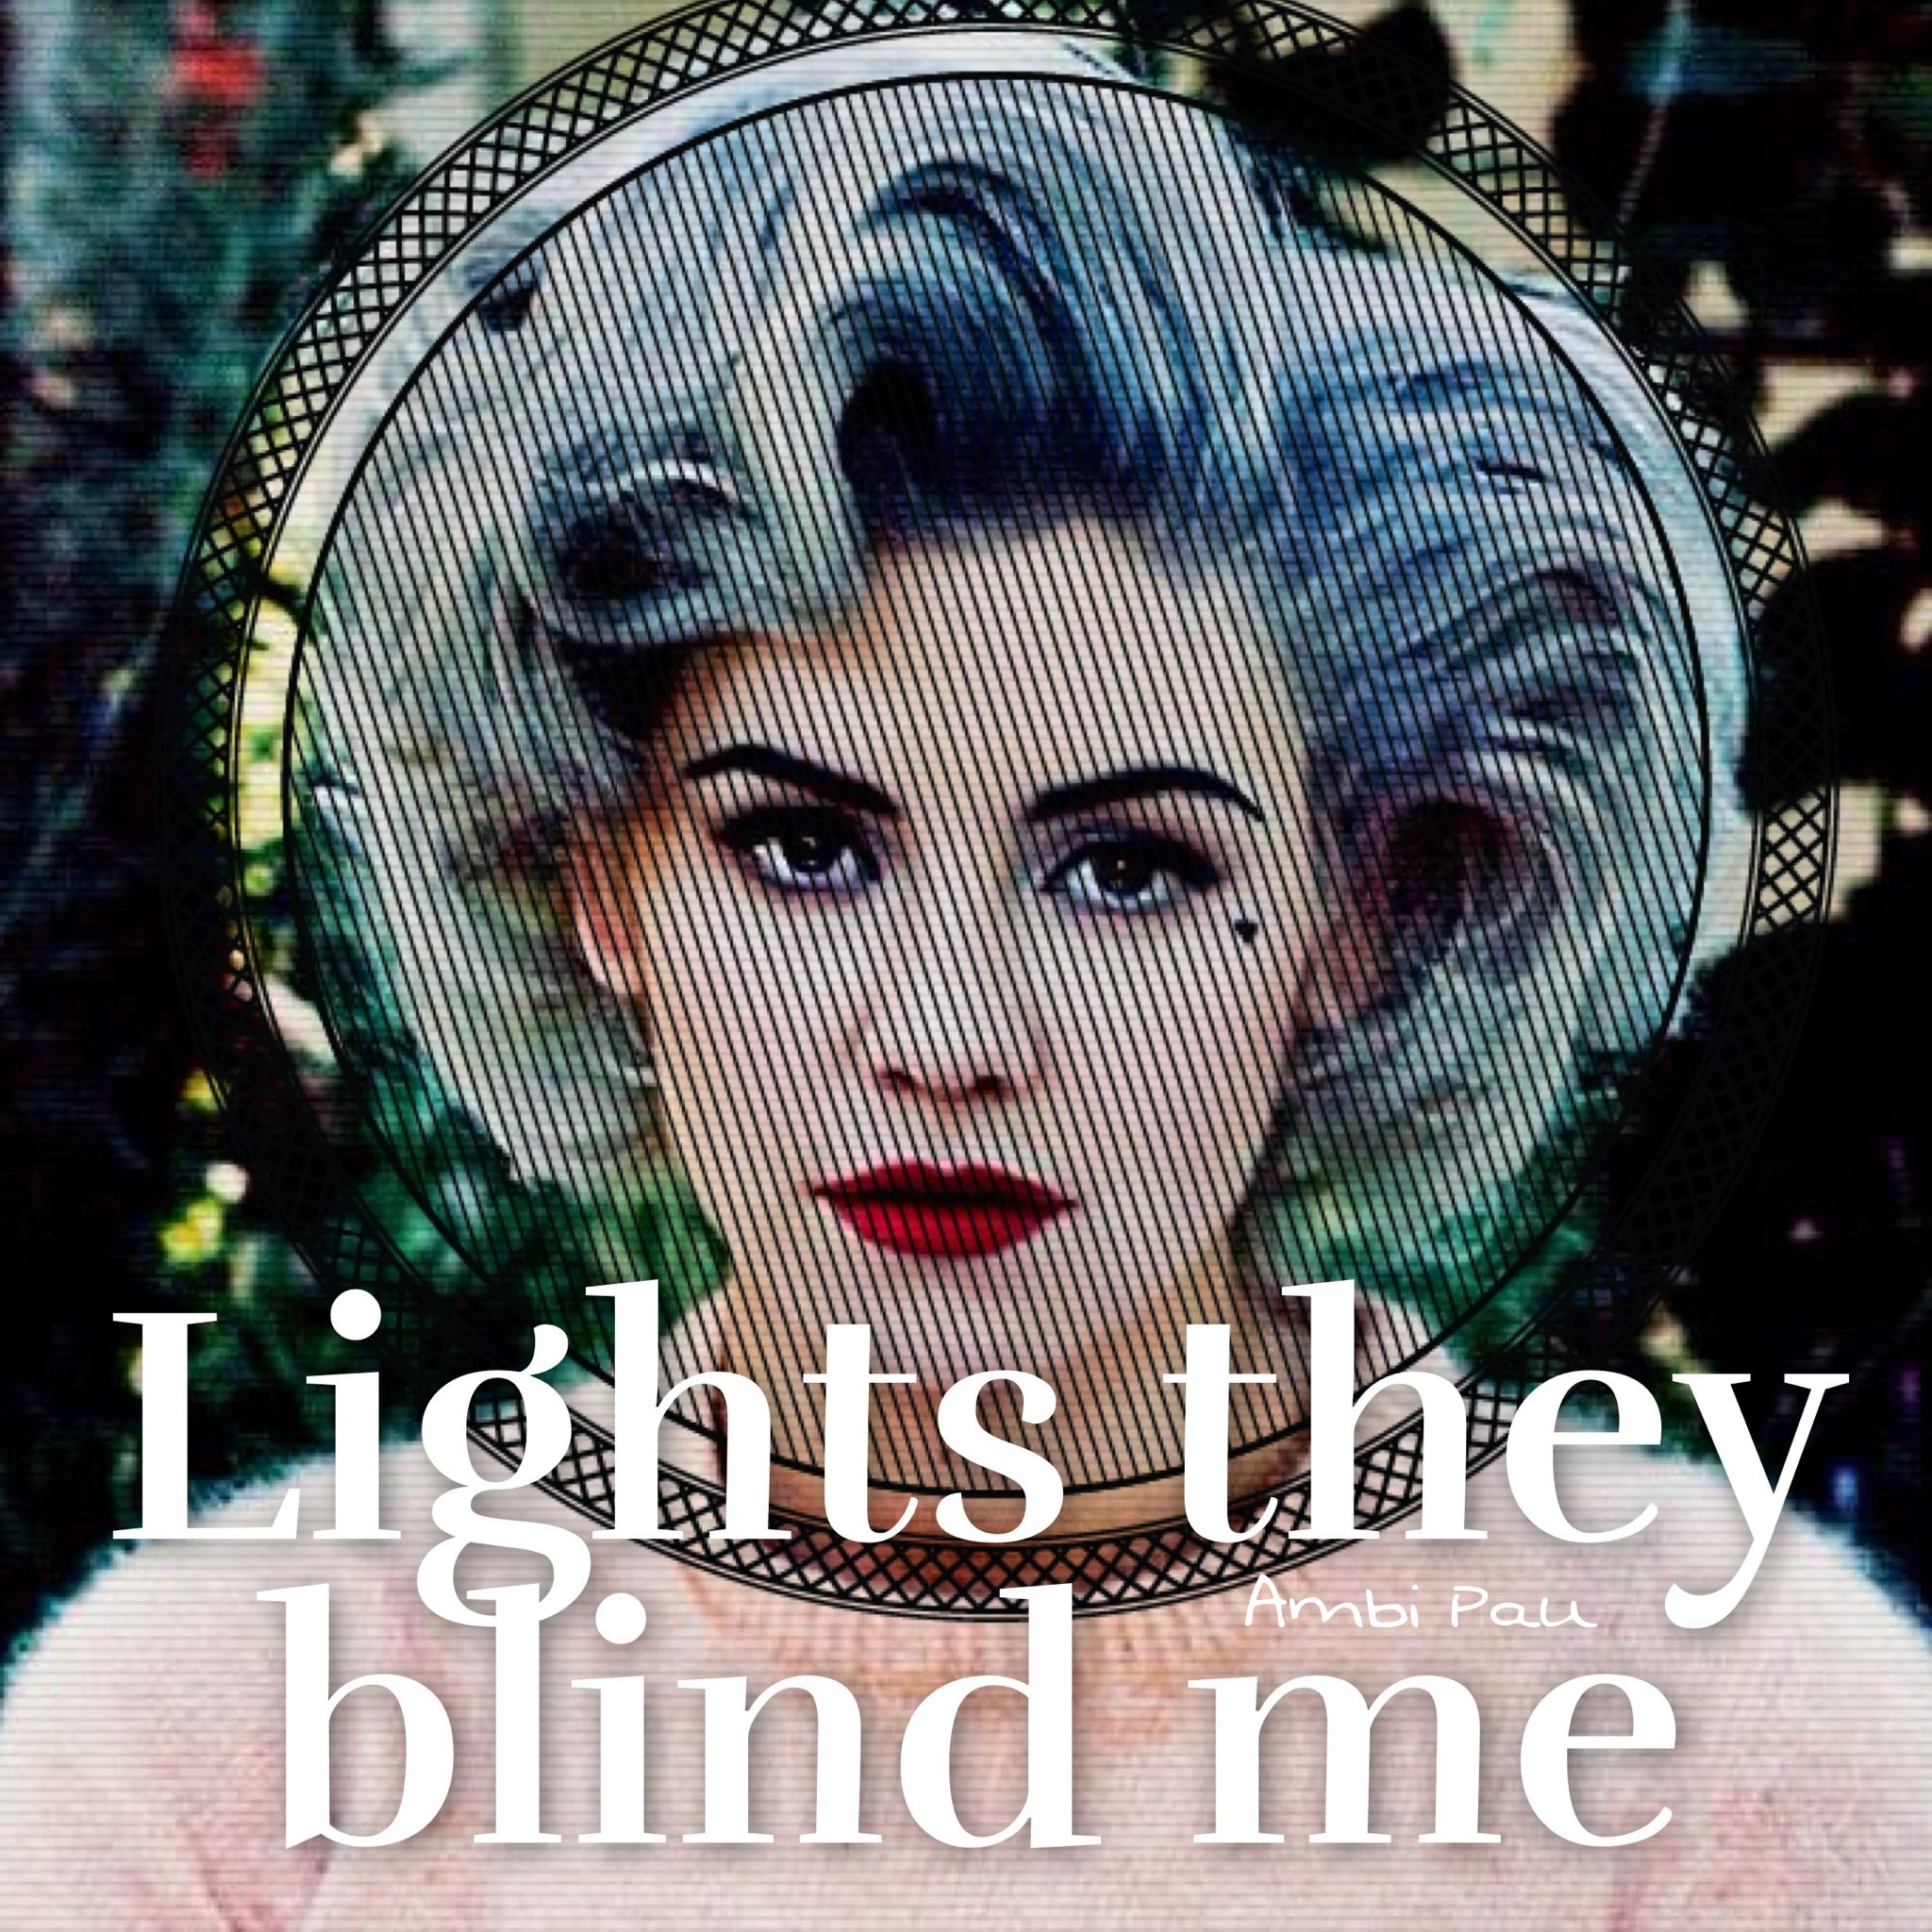 Lights they blind me... Electra Heart. R.I.P. Marina and ...